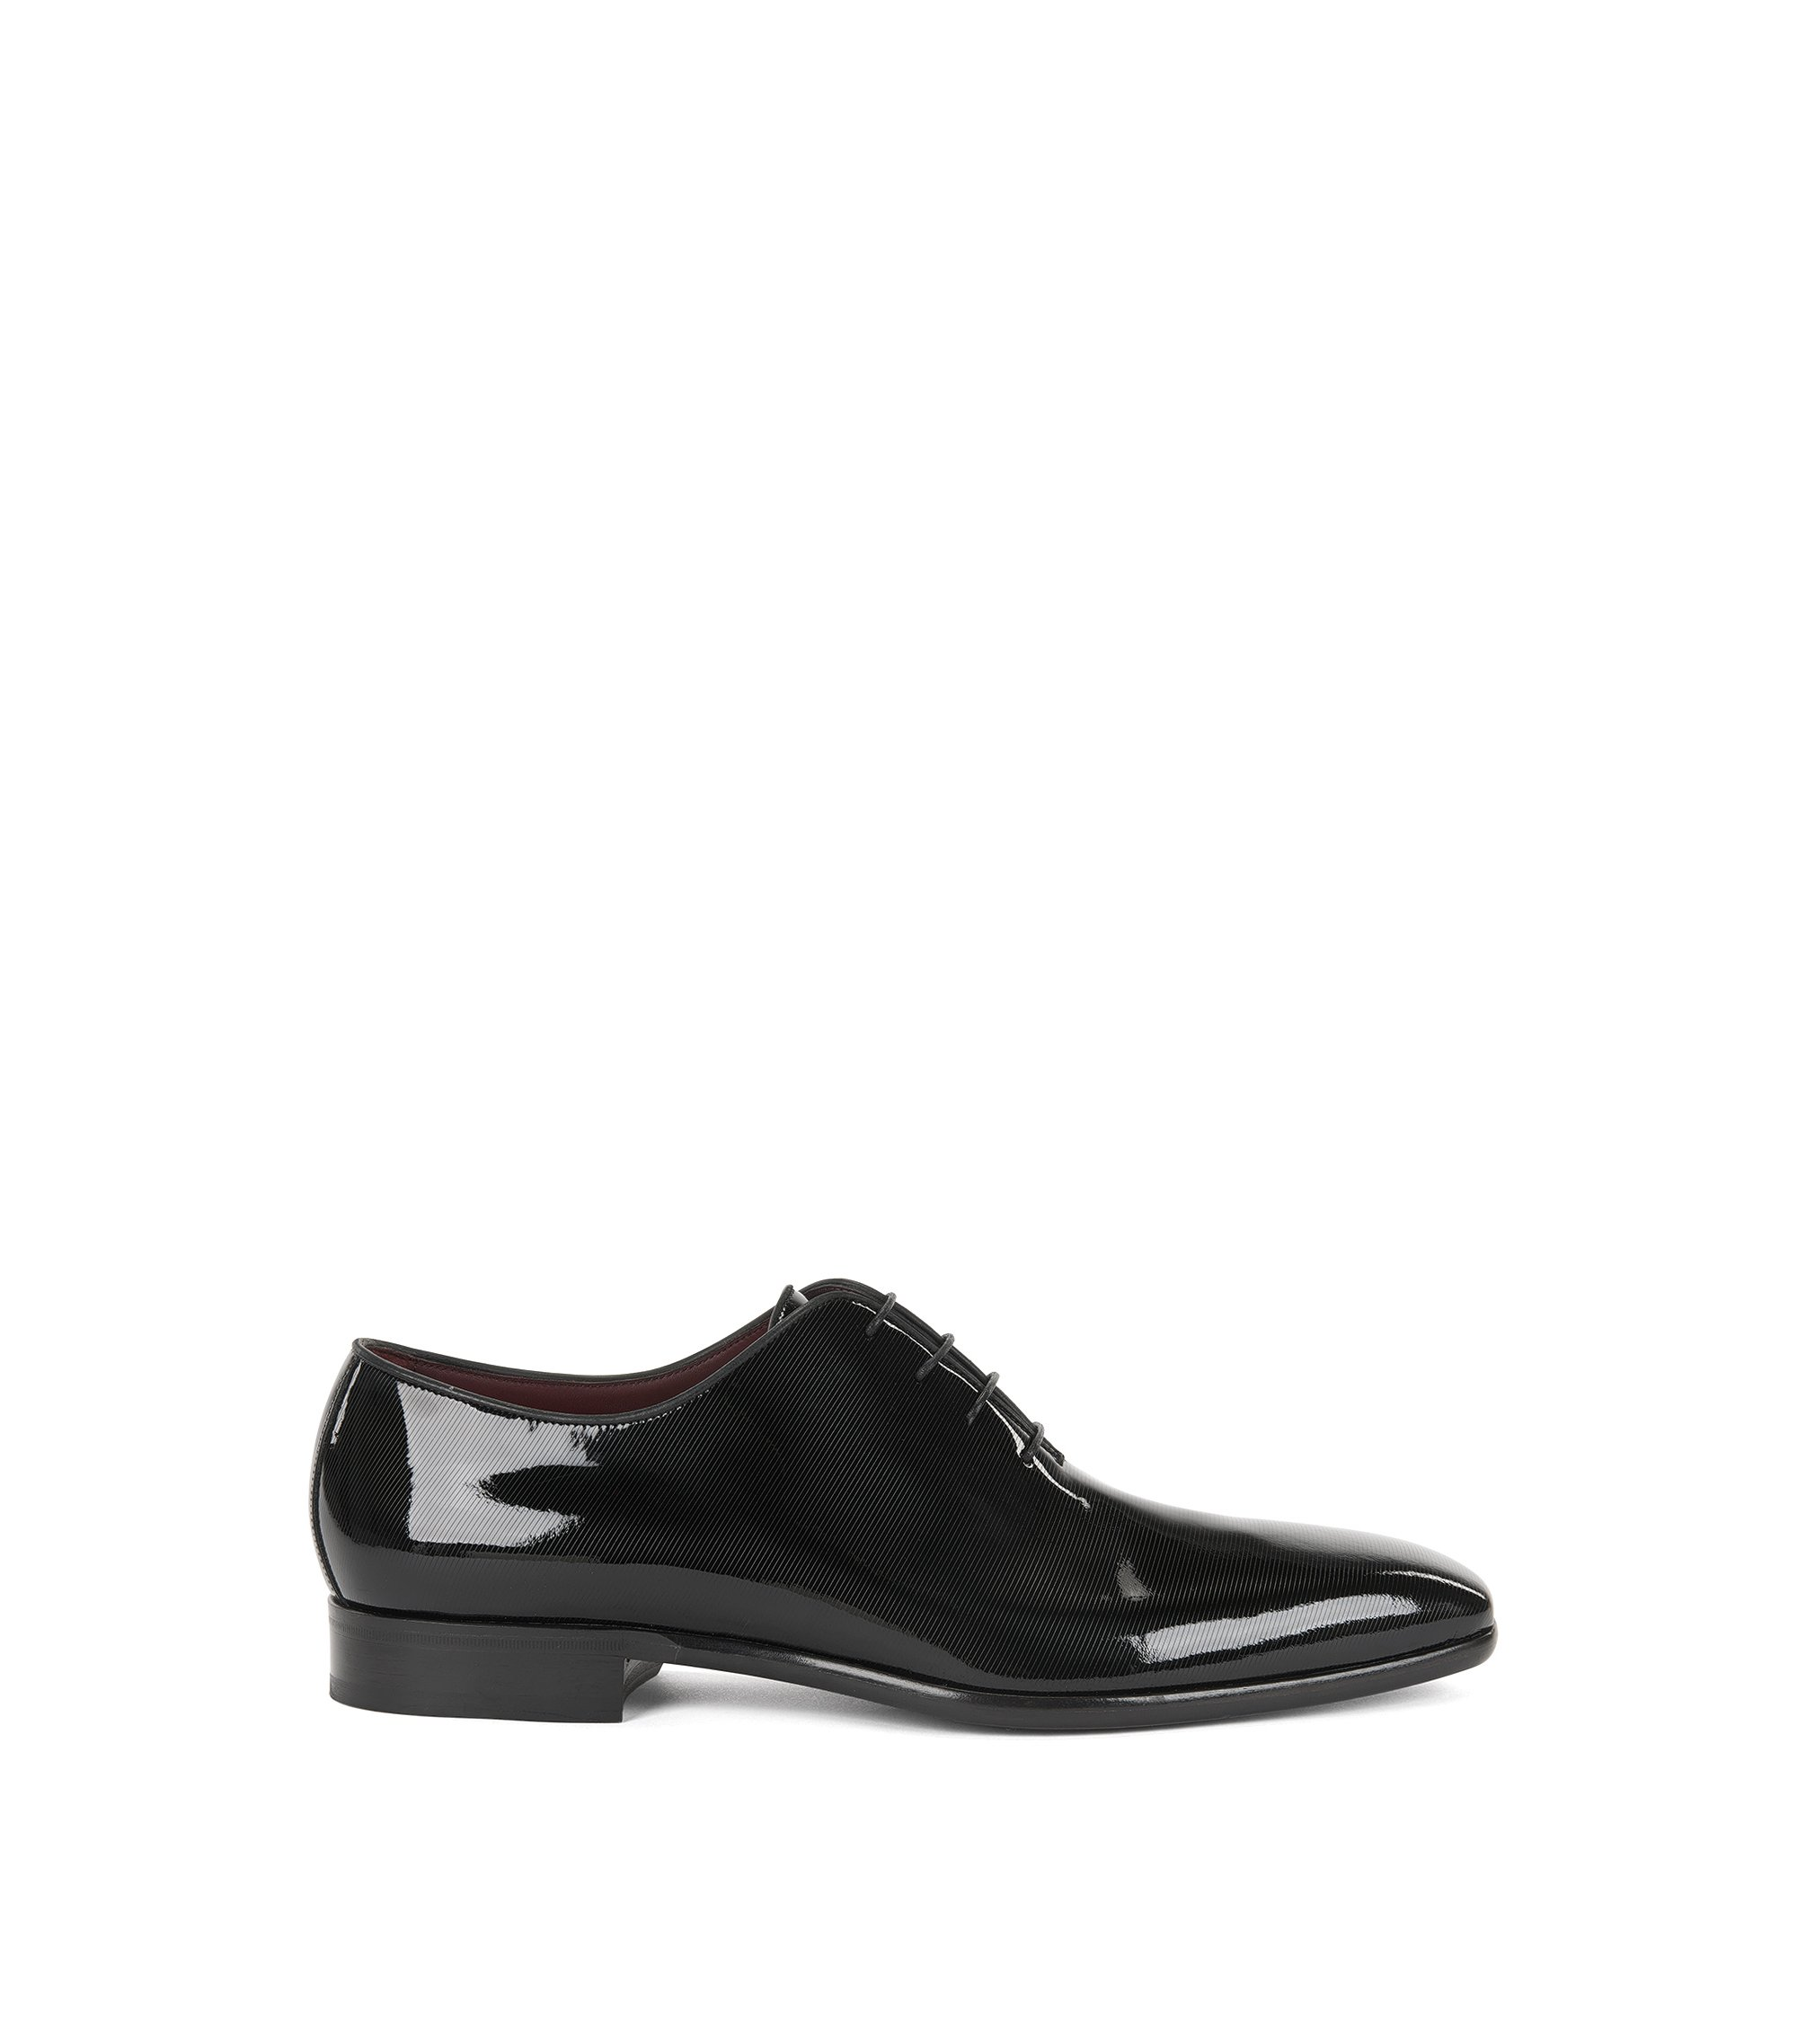 Patent Leather Oxford Shoe | T-Club Oxfr Pals, Black